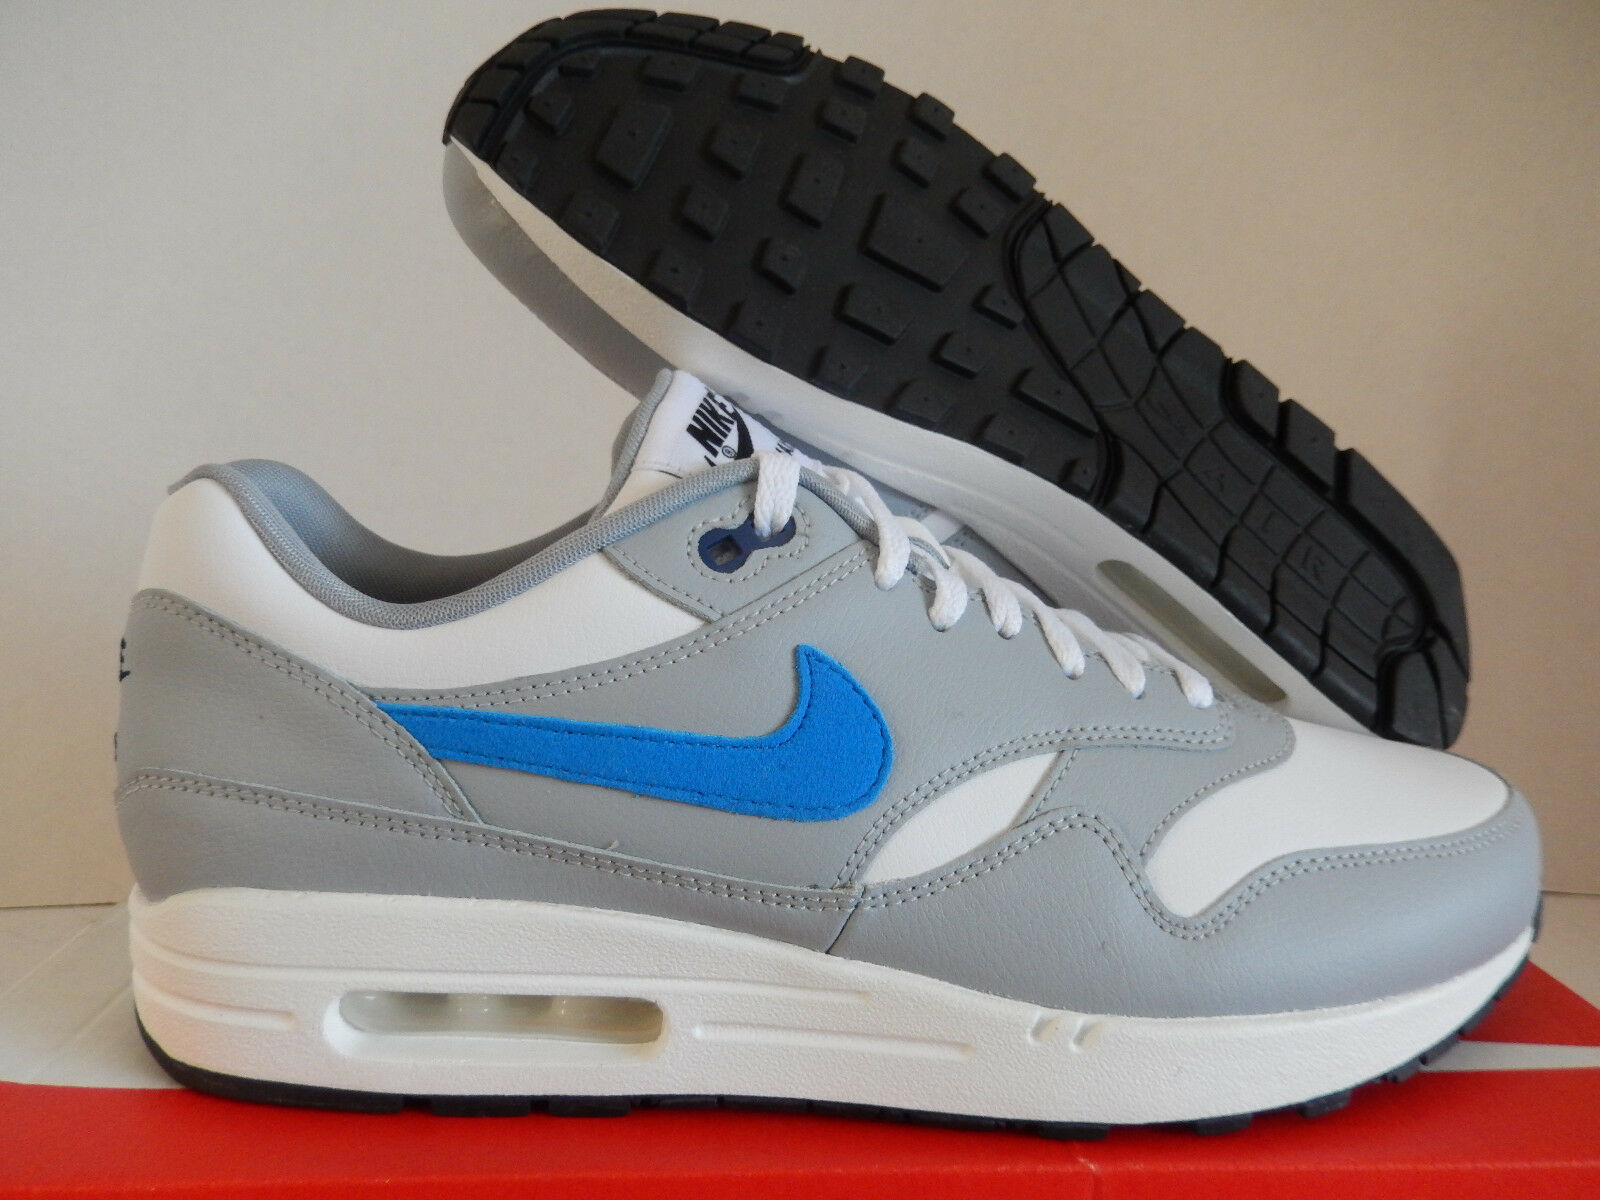 aacc0507c1d7 NIKE AIR AIR AIR MAX 1 ID WHITE-GREY-BLUE SZ 10.5  943756-991 ...